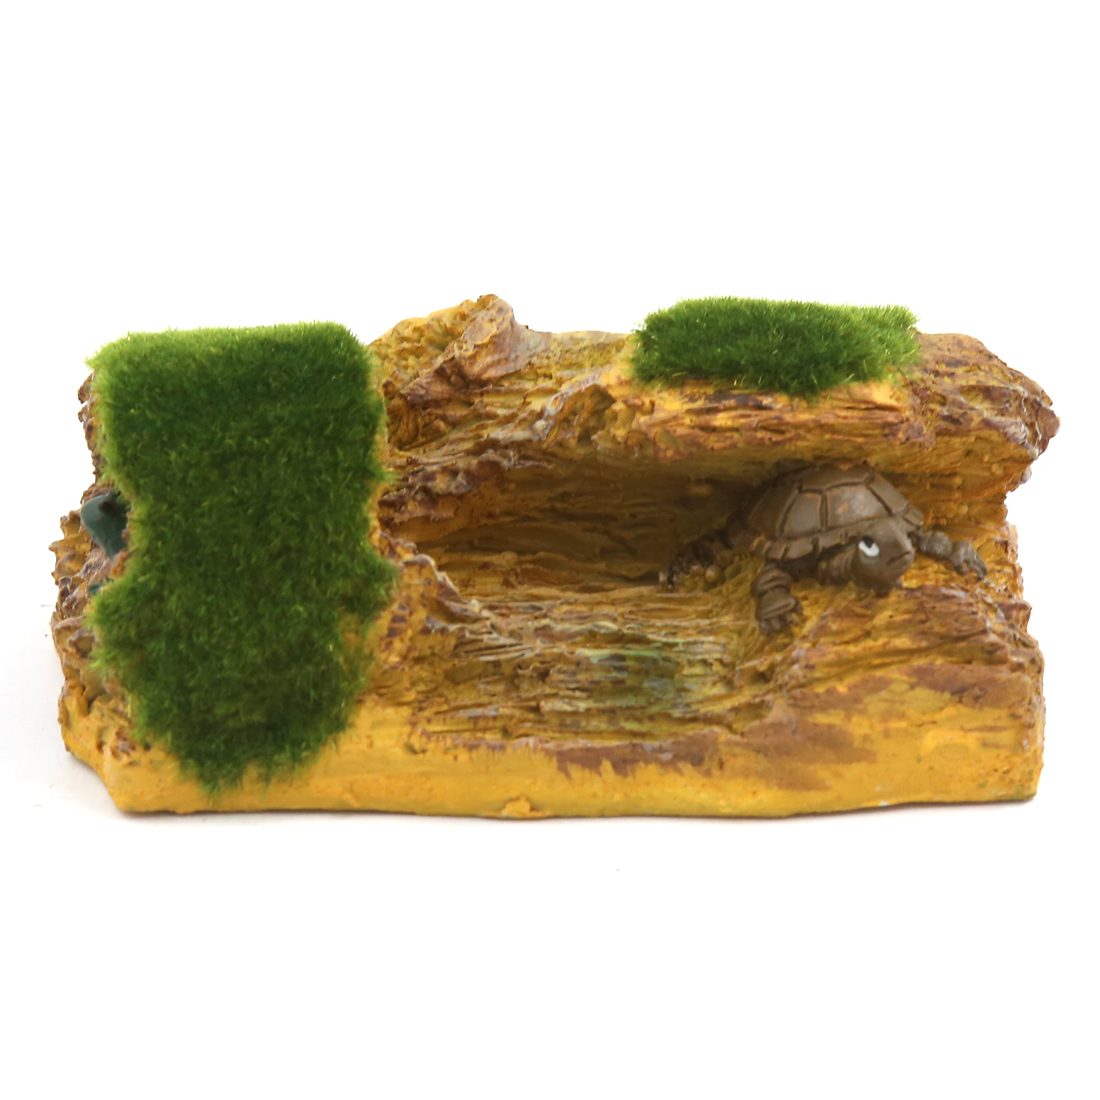 Aqua Landscape Artificial Trunk Cave Mountain Decoration 11x8x5cm